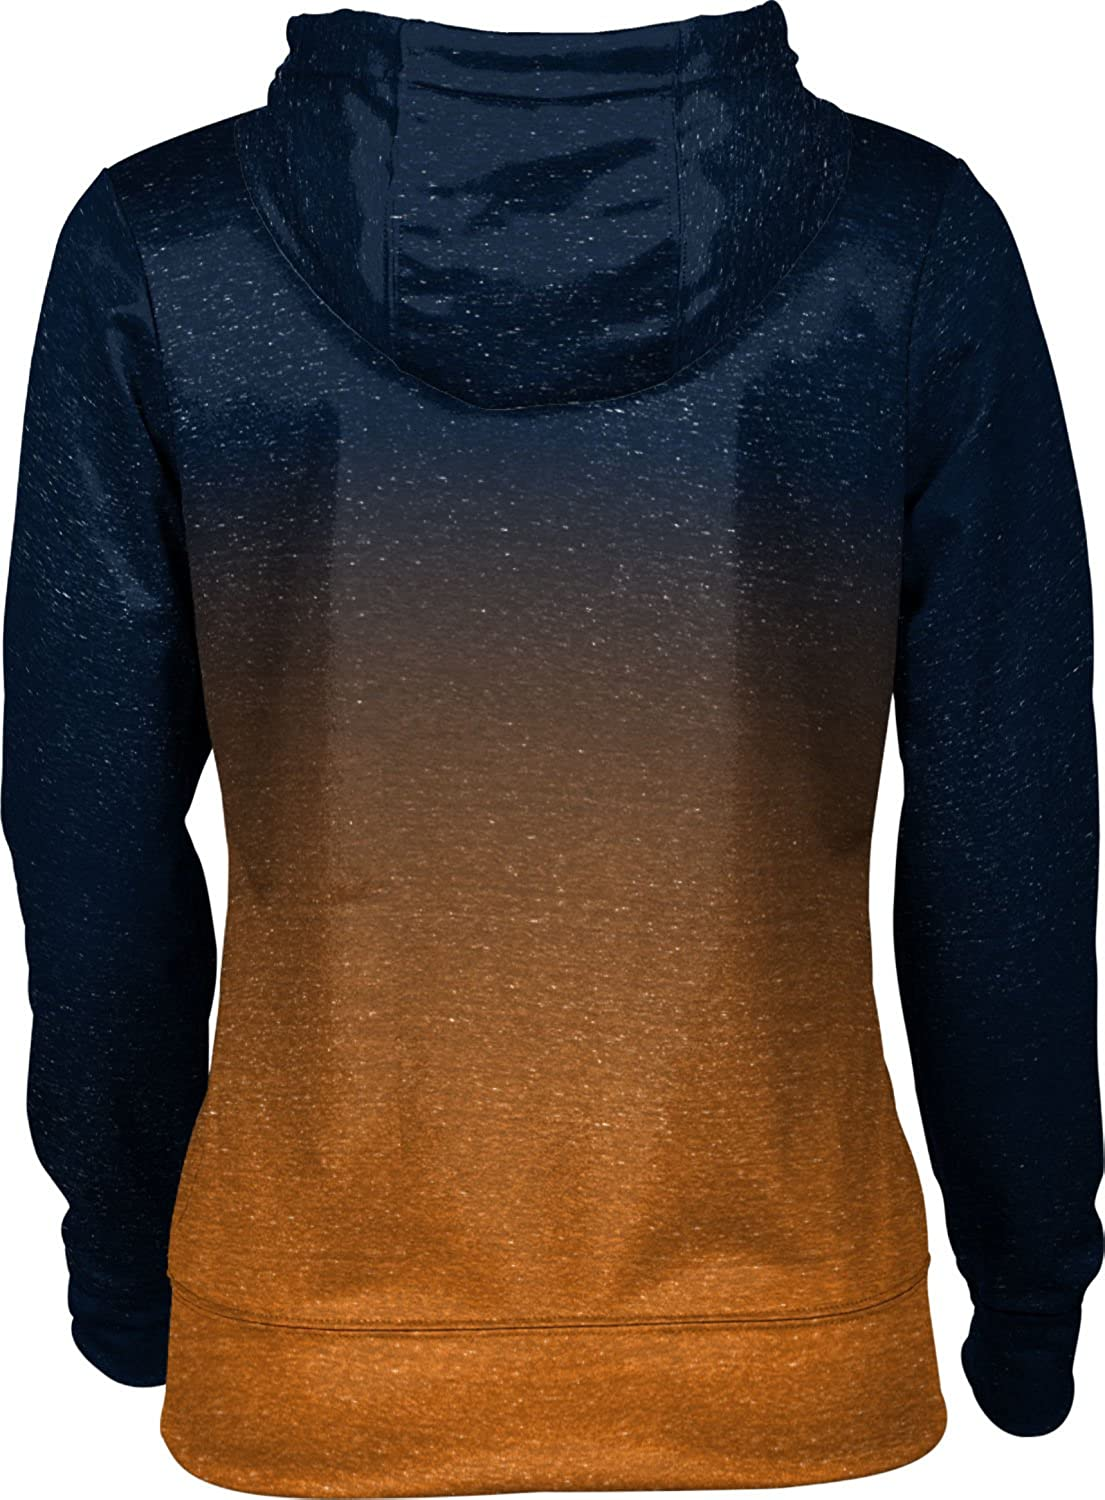 School Spirit Sweatshirt University of Tennessee at Martin Girls Zipper Hoodie Ombre